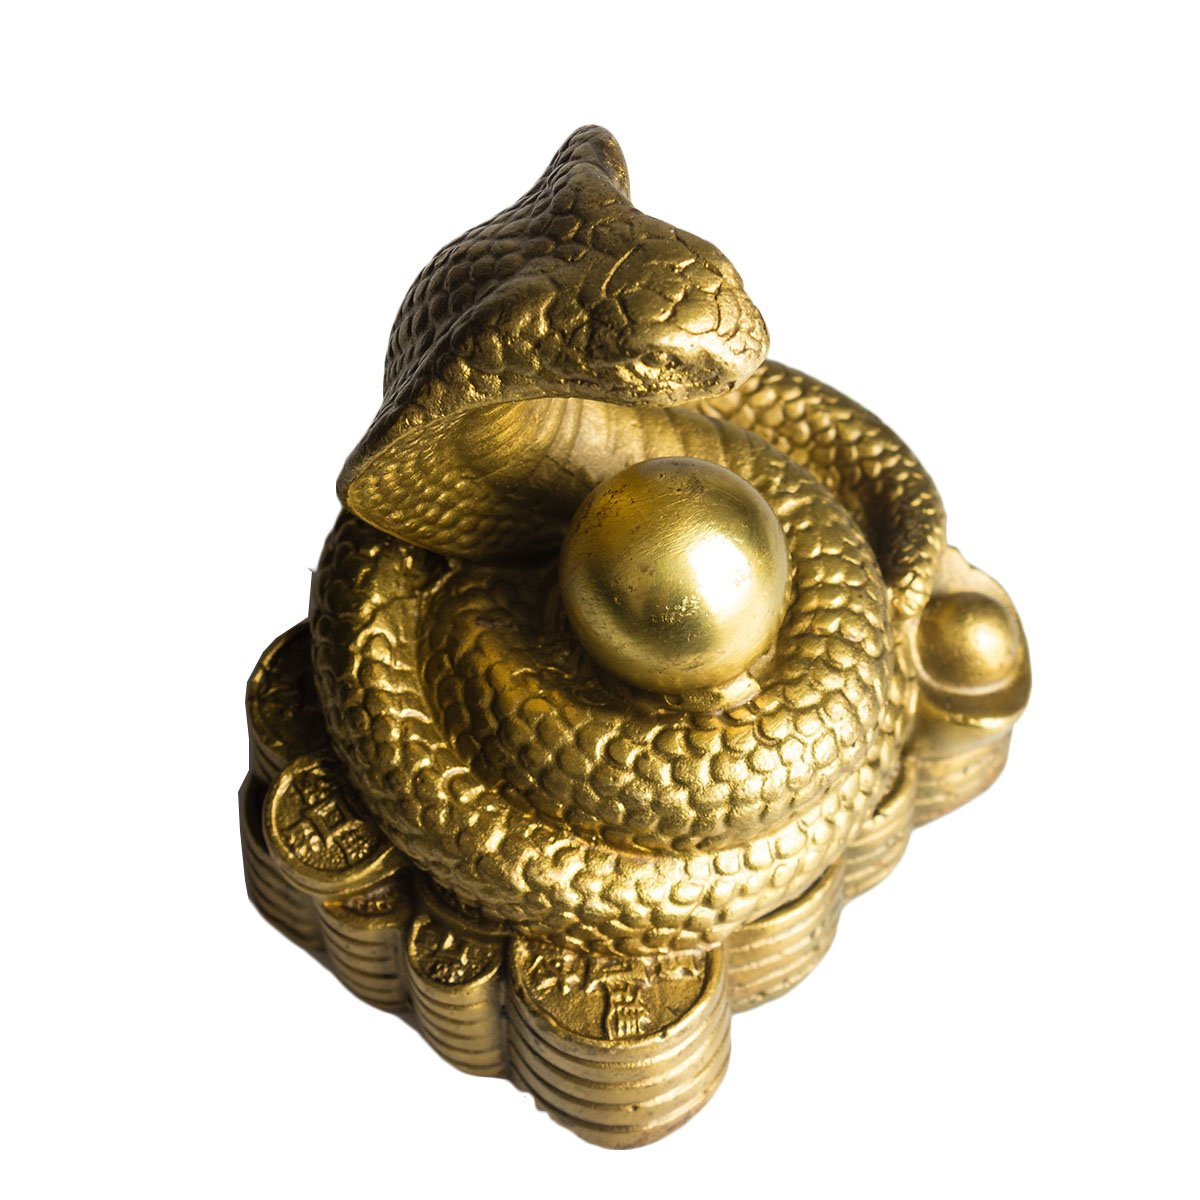 Brass Chinese Zodiac Ingots Snake Statue Home Decoration Collectibles by Brass Statu (Image #5)